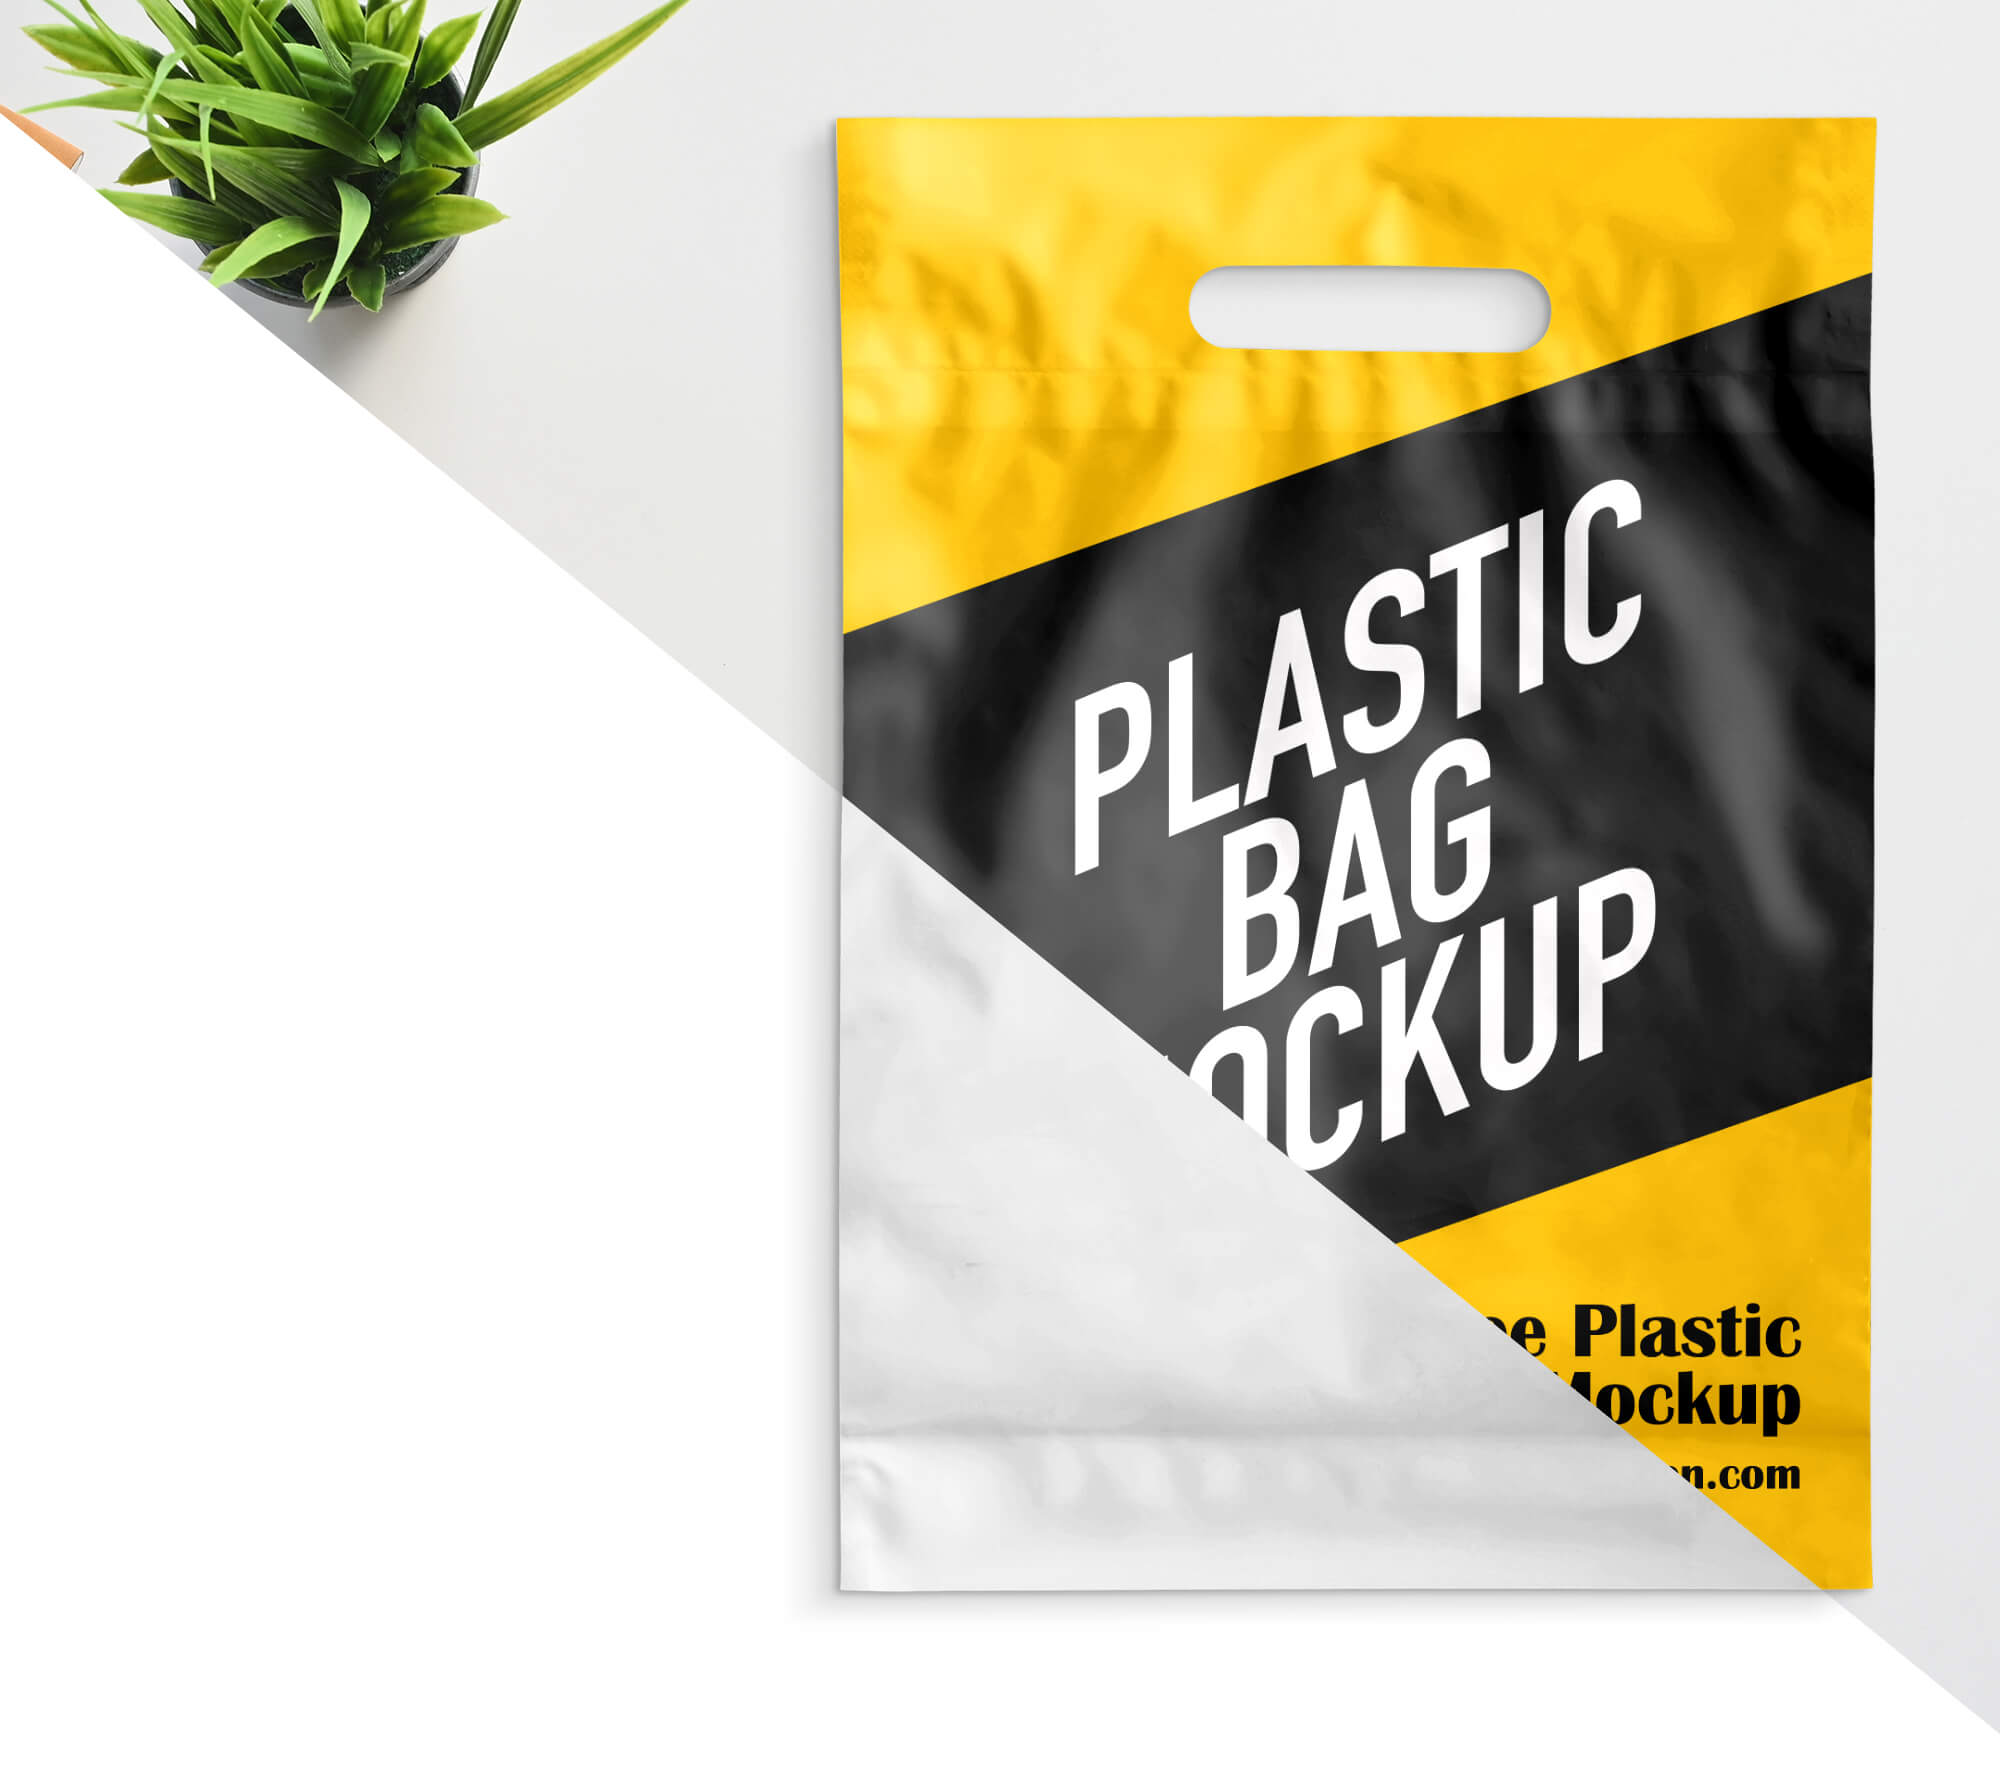 + mockup file for photoshop cc 2015 that uses artboards feature (all shots in one). Free Plastic Bag Mockup Psd Template Mockup Den